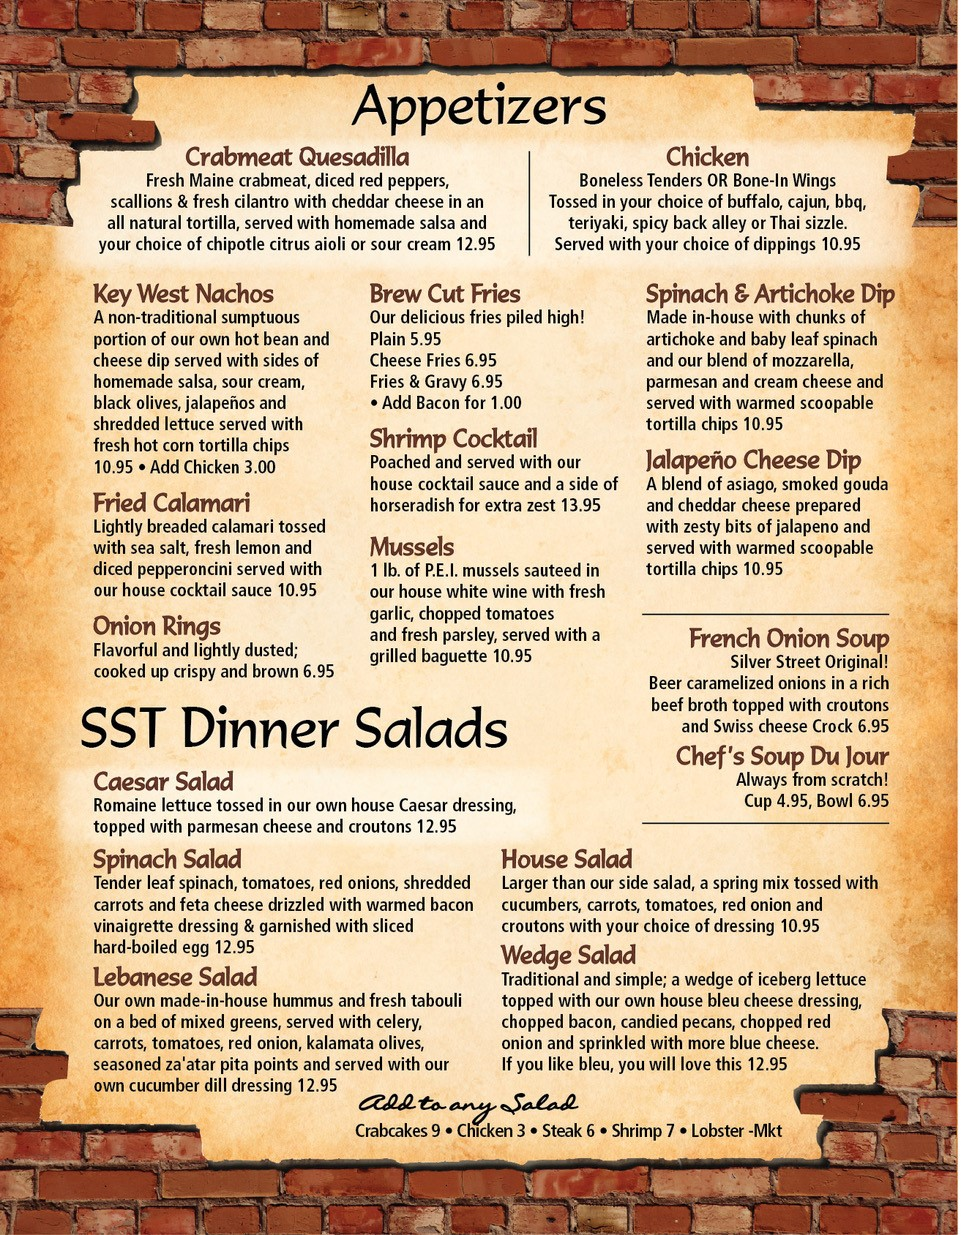 SST Appetizers and Salads